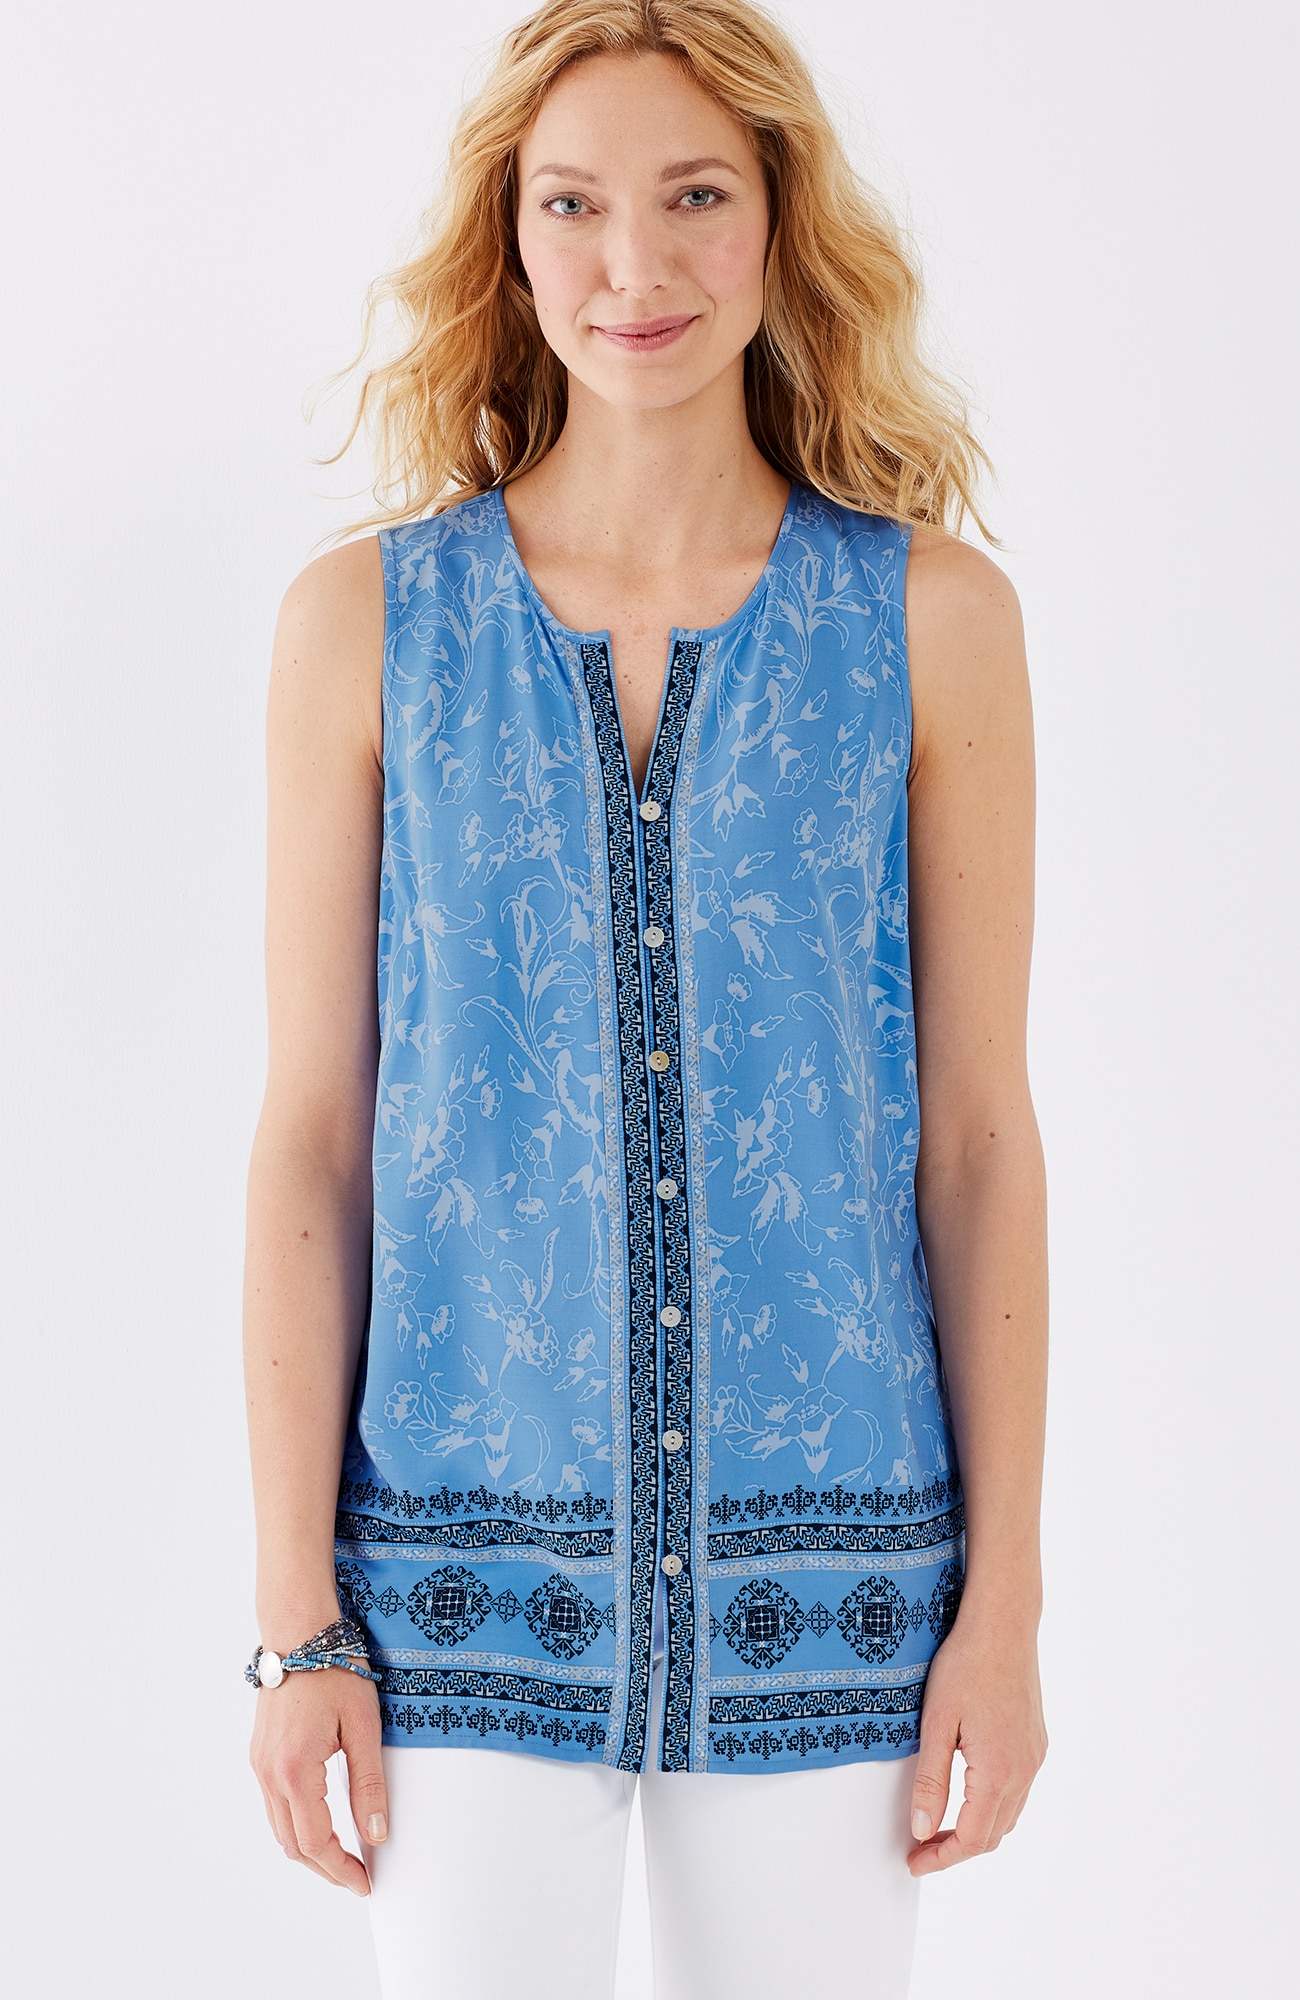 border-print sleeveless top